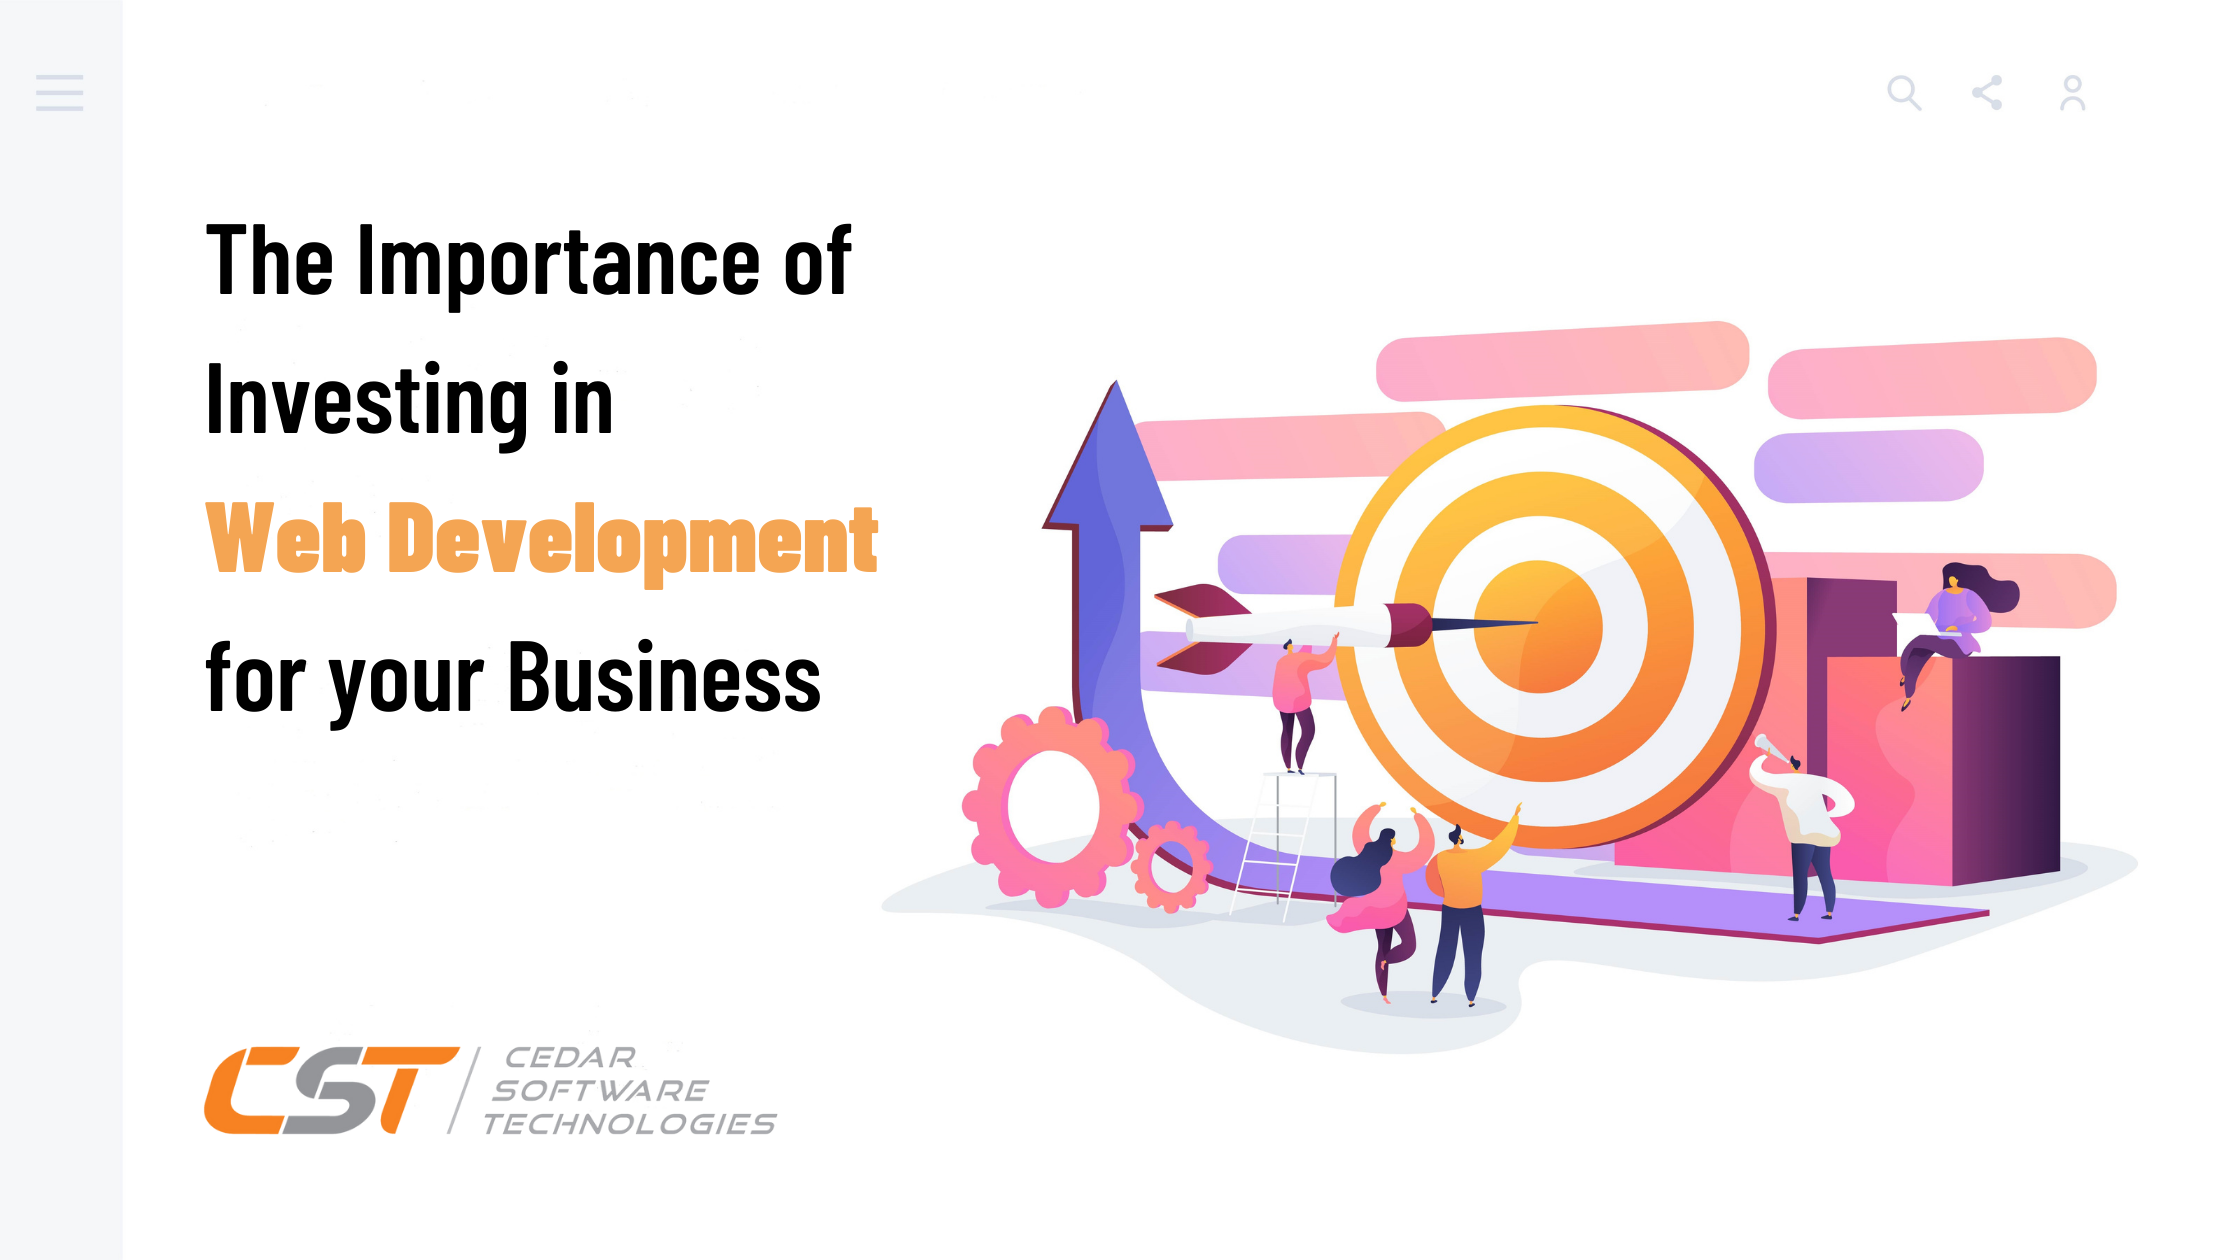 The Importance of investing in Web Development for your Business